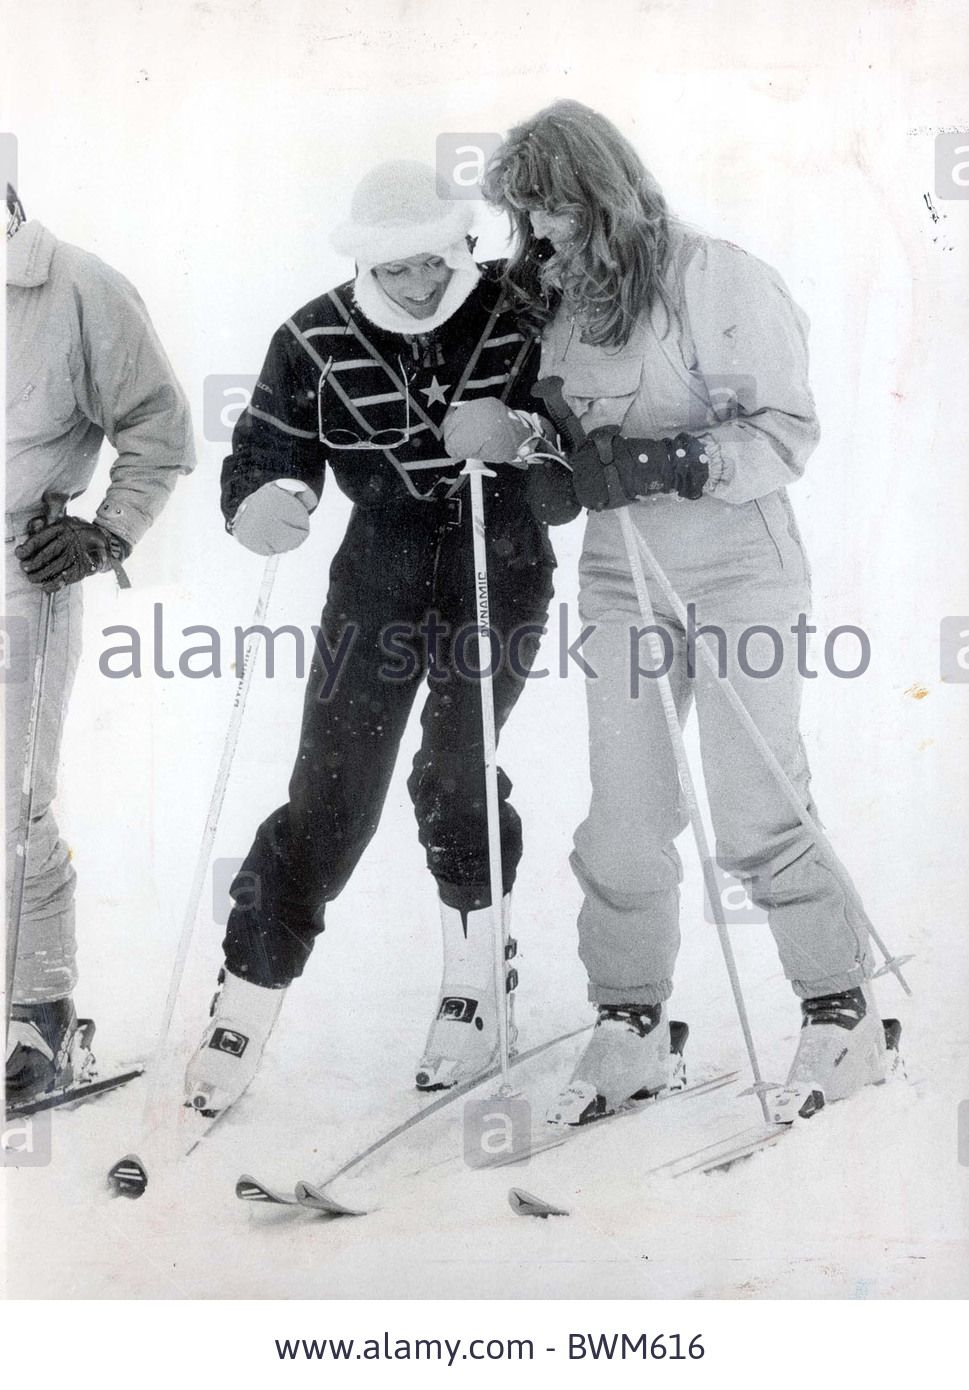 February 17, 1987: Princess Diana and Sarah, the Duchess of York during a photocall in Klosters, Switzerland.